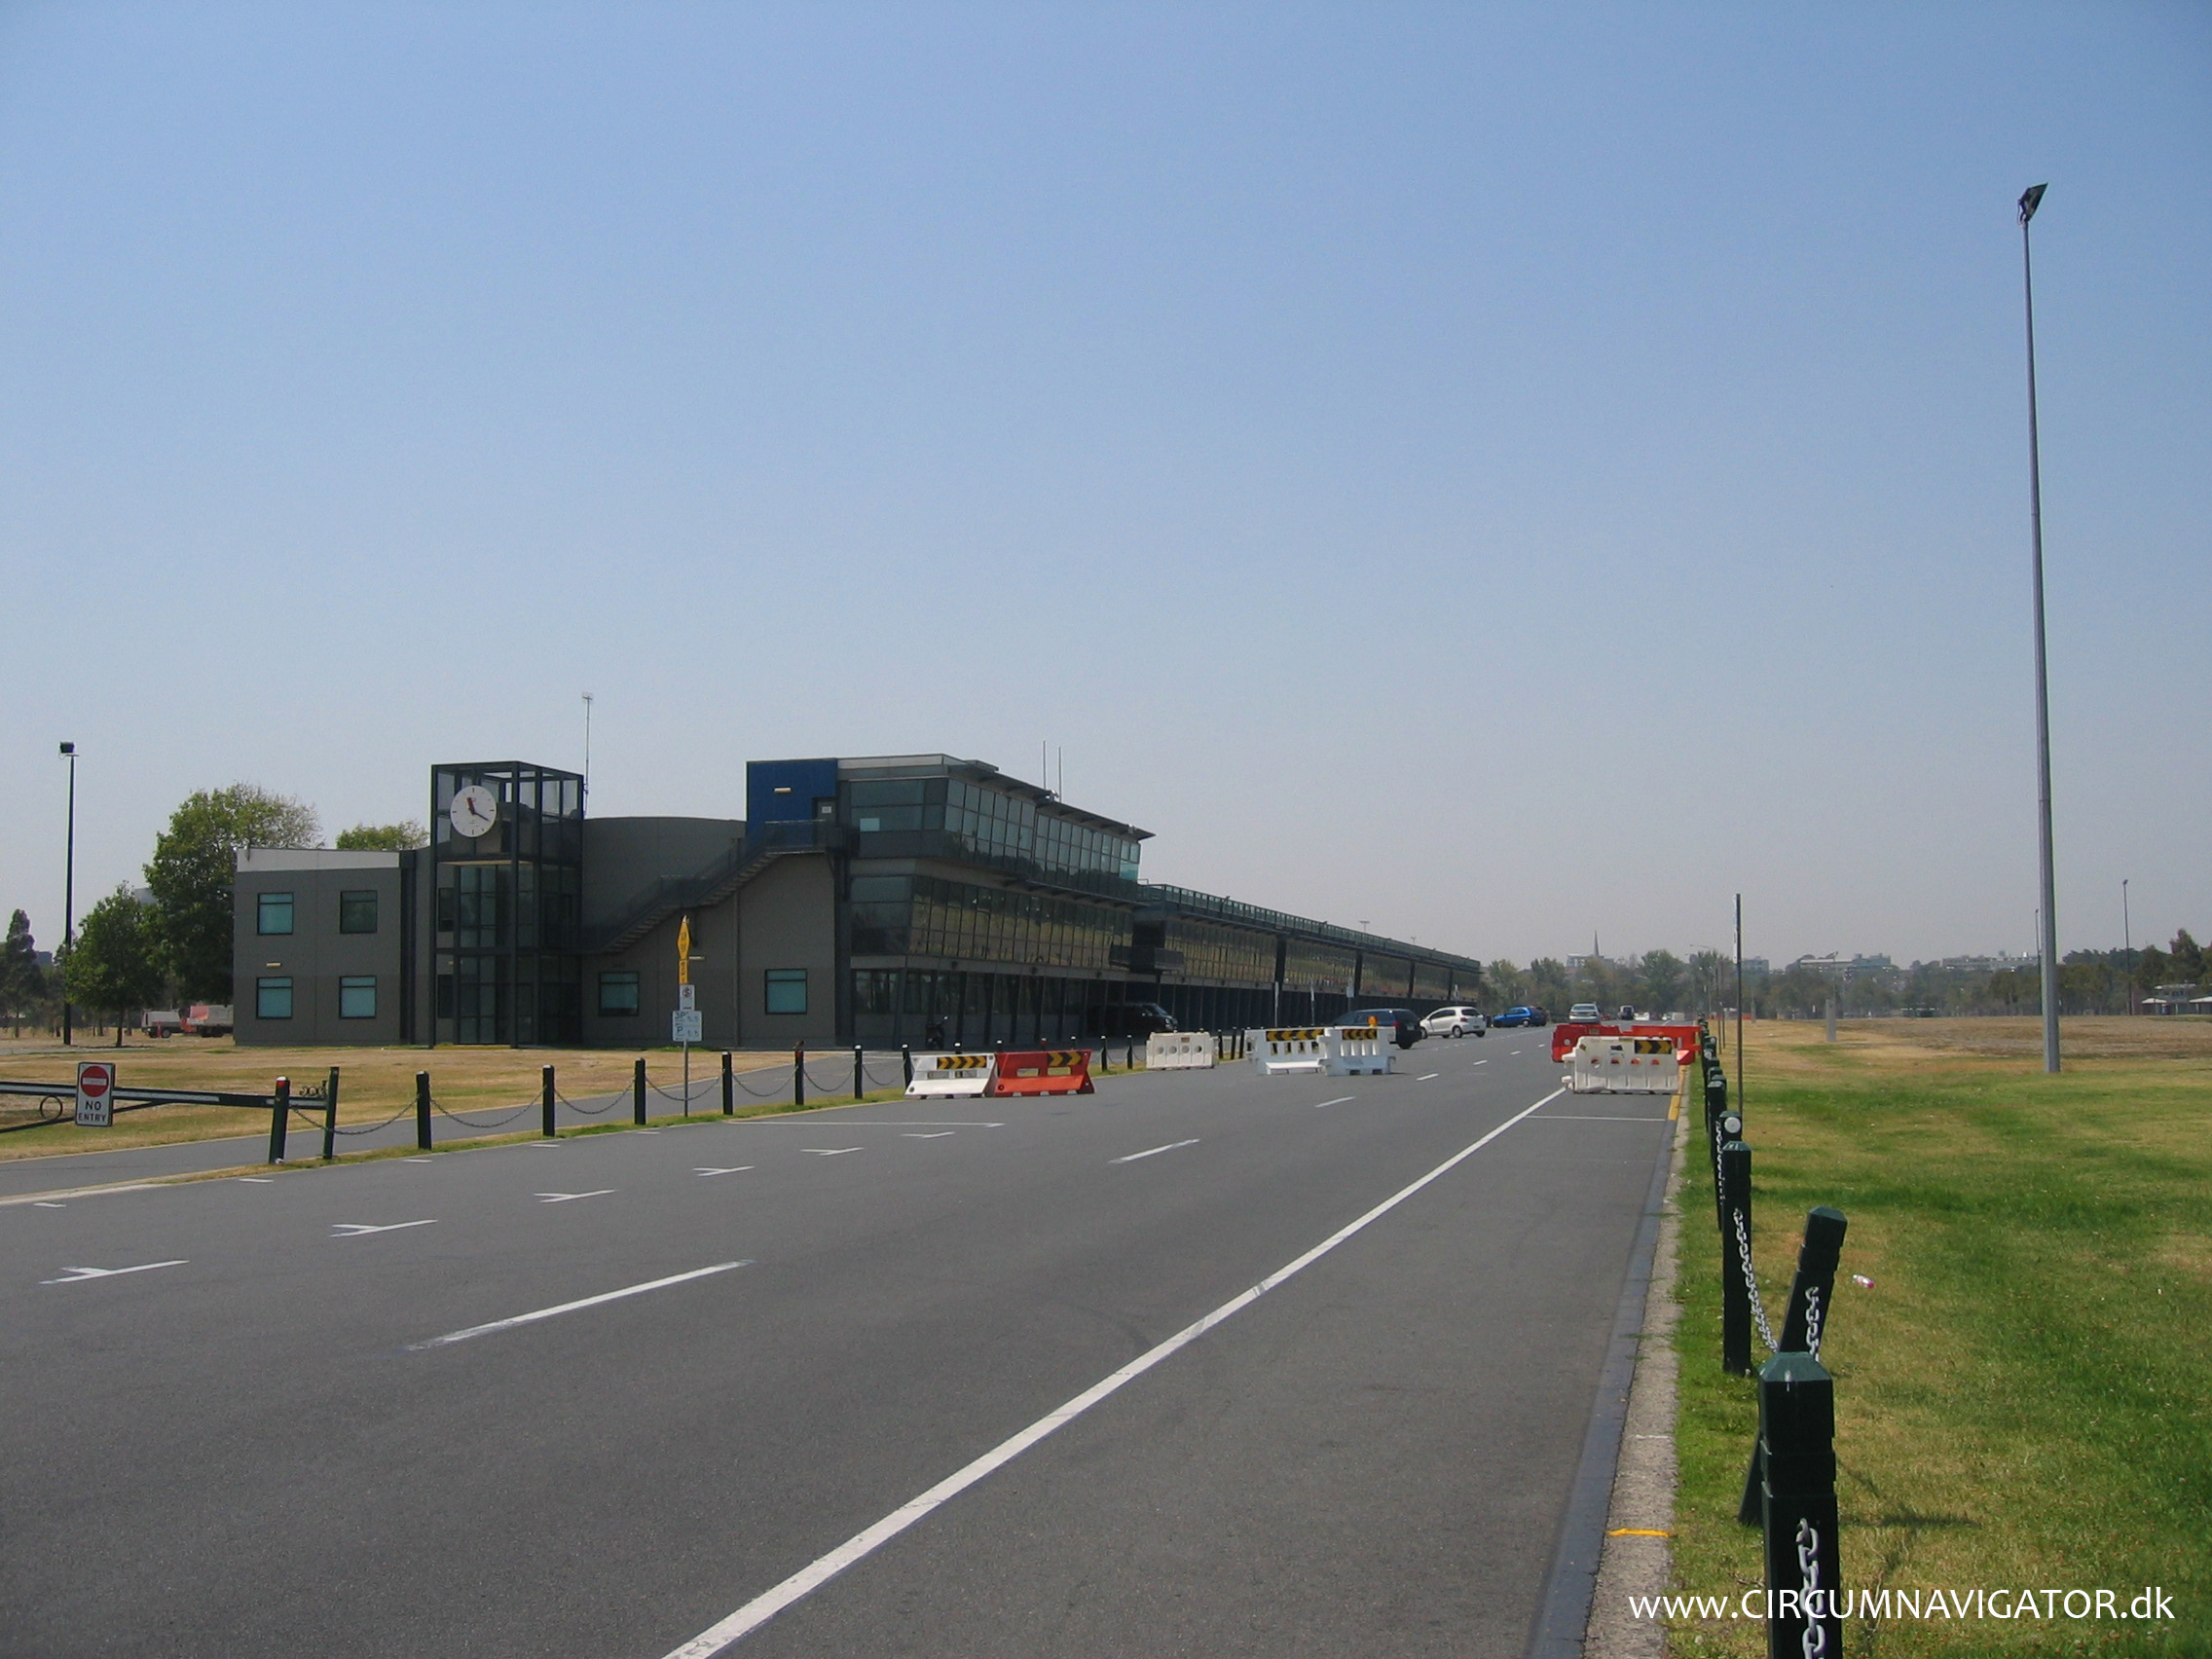 Driving the Formula 1 circuit in Melbourne